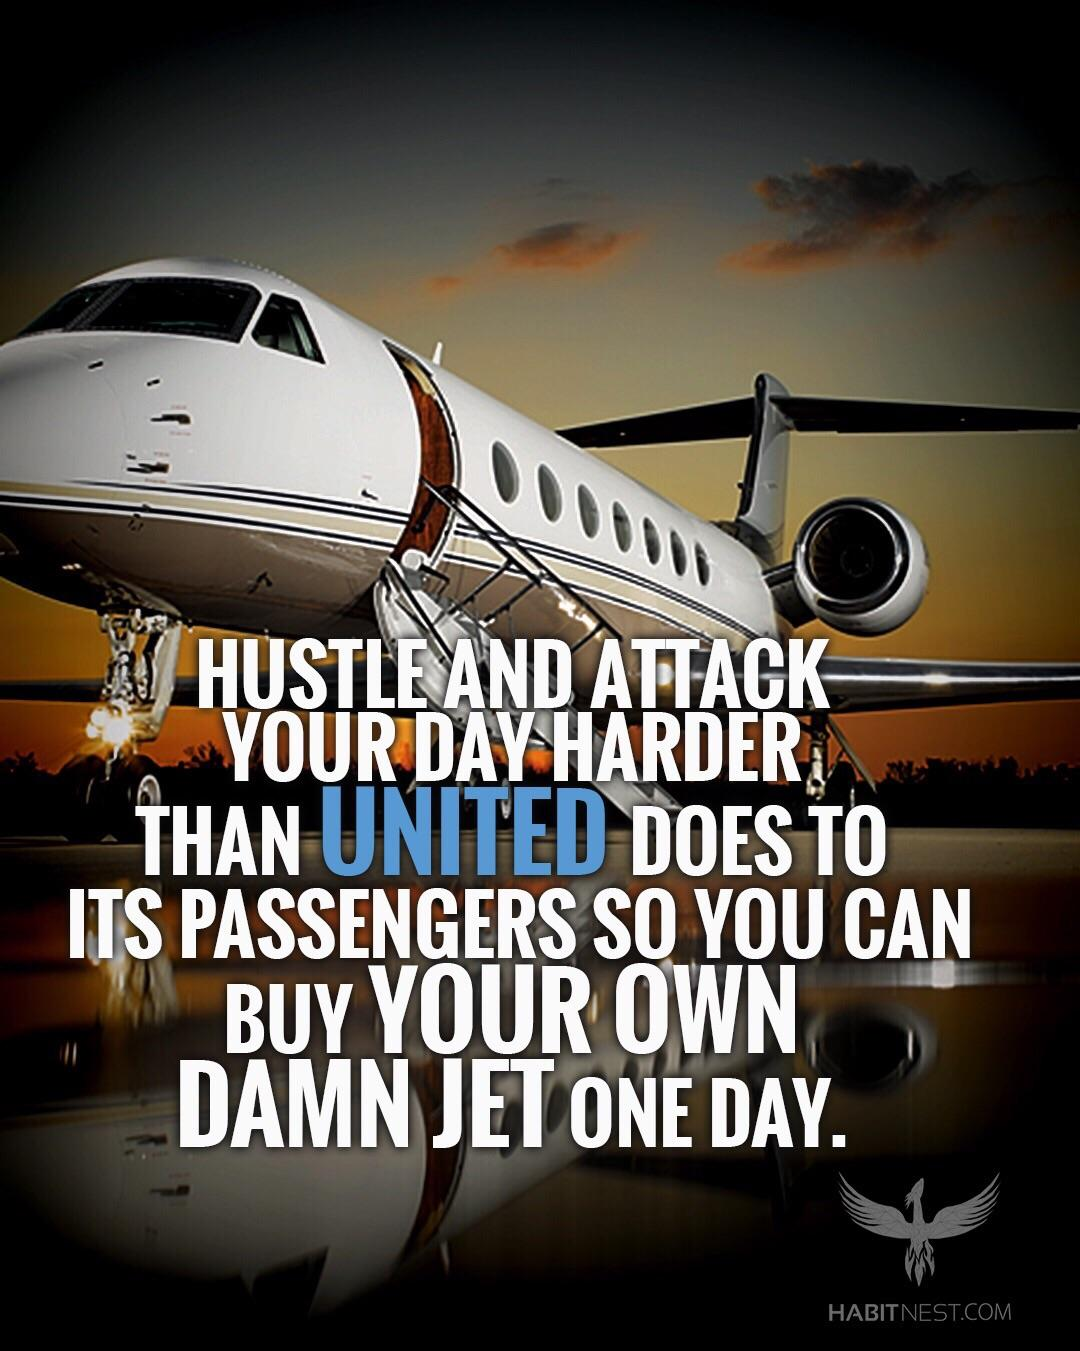 [Image] Buy your own damn jet.